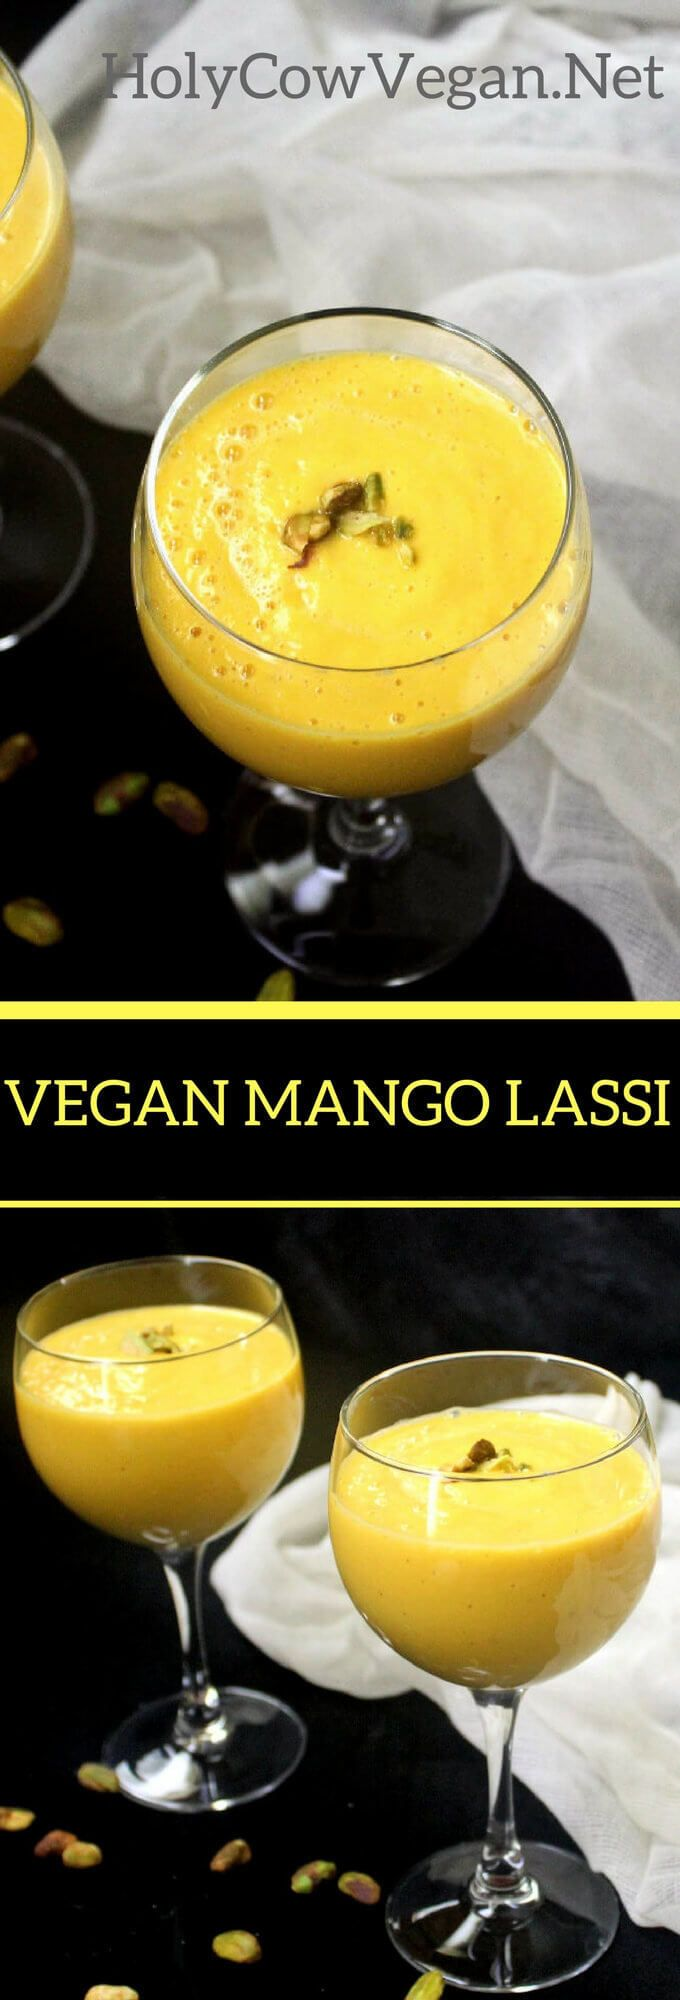 This Vegan Mango Lassi is the best drink to chill down during these sweltering summer days. Cardamom and vanilla complement the tangy sweetness of the mangoes. Gluten-free.